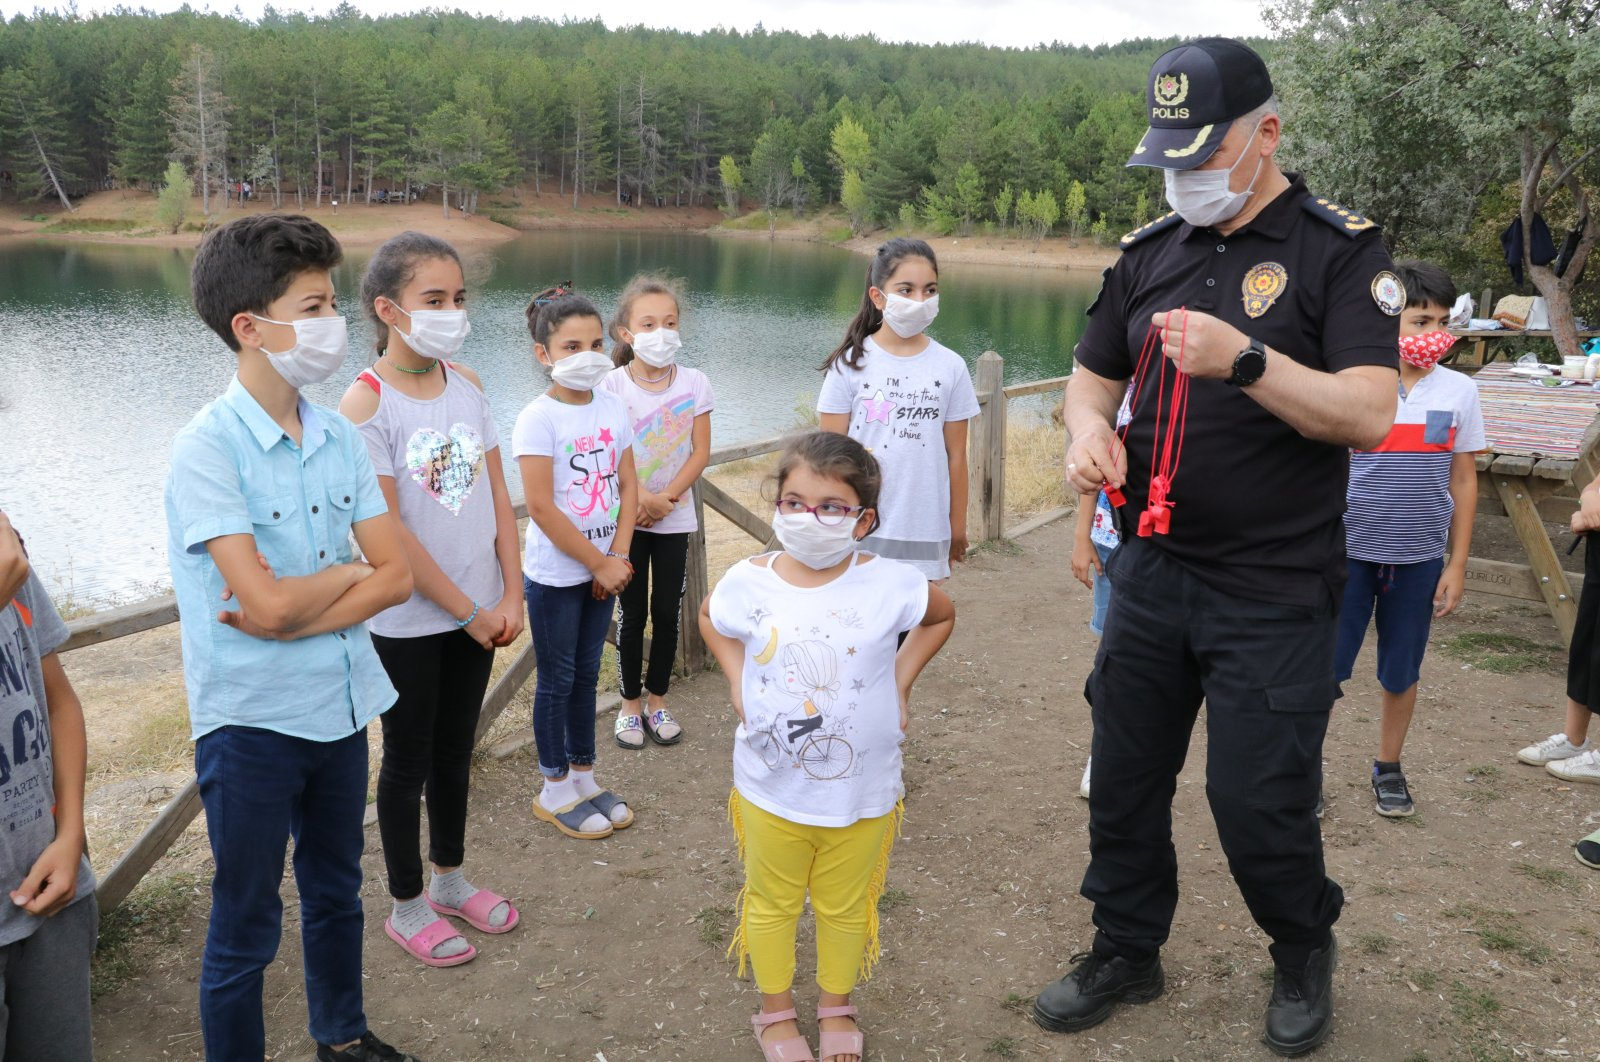 Police officers take part in a program to raise awareness about the coronavirus pandemic in central Yozgat province, Turkey, Aug. 2, 2020. (AA Photo)